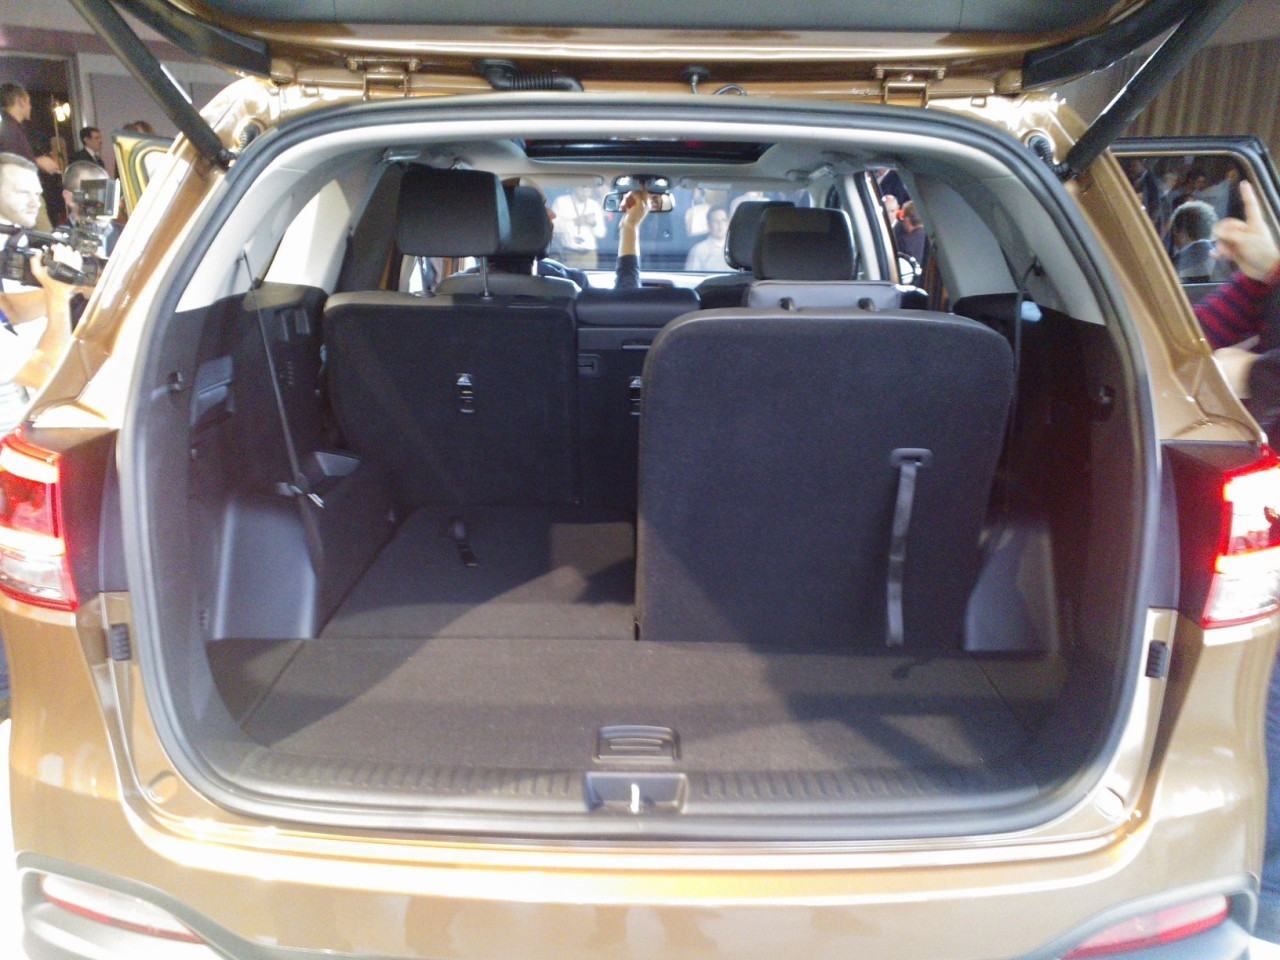 kia sorento 2015 en route vers les sommets photo 2 l 39 argus. Black Bedroom Furniture Sets. Home Design Ideas